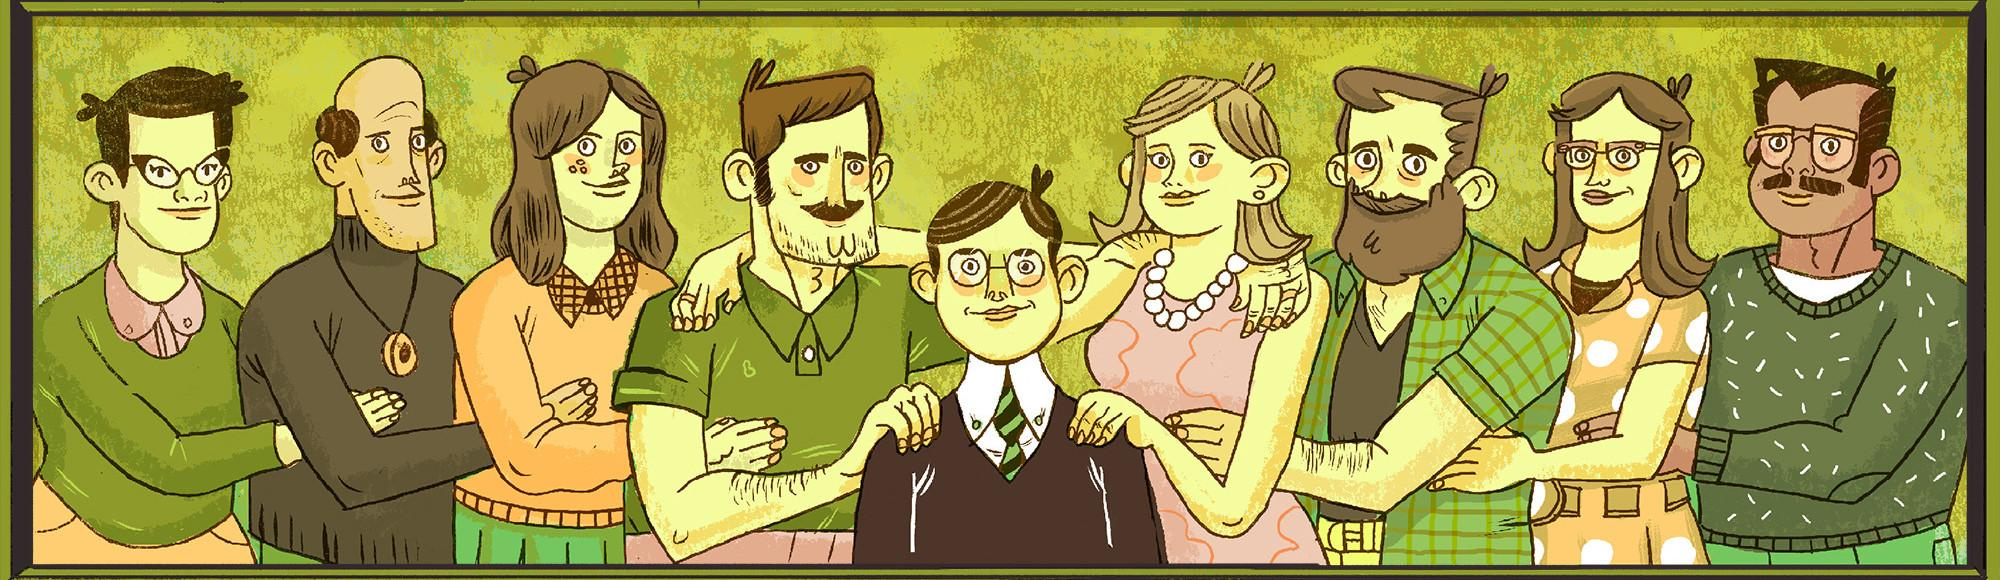 i-grew-up-in-a-polyamorous-household-528-1433107397-crop_lede